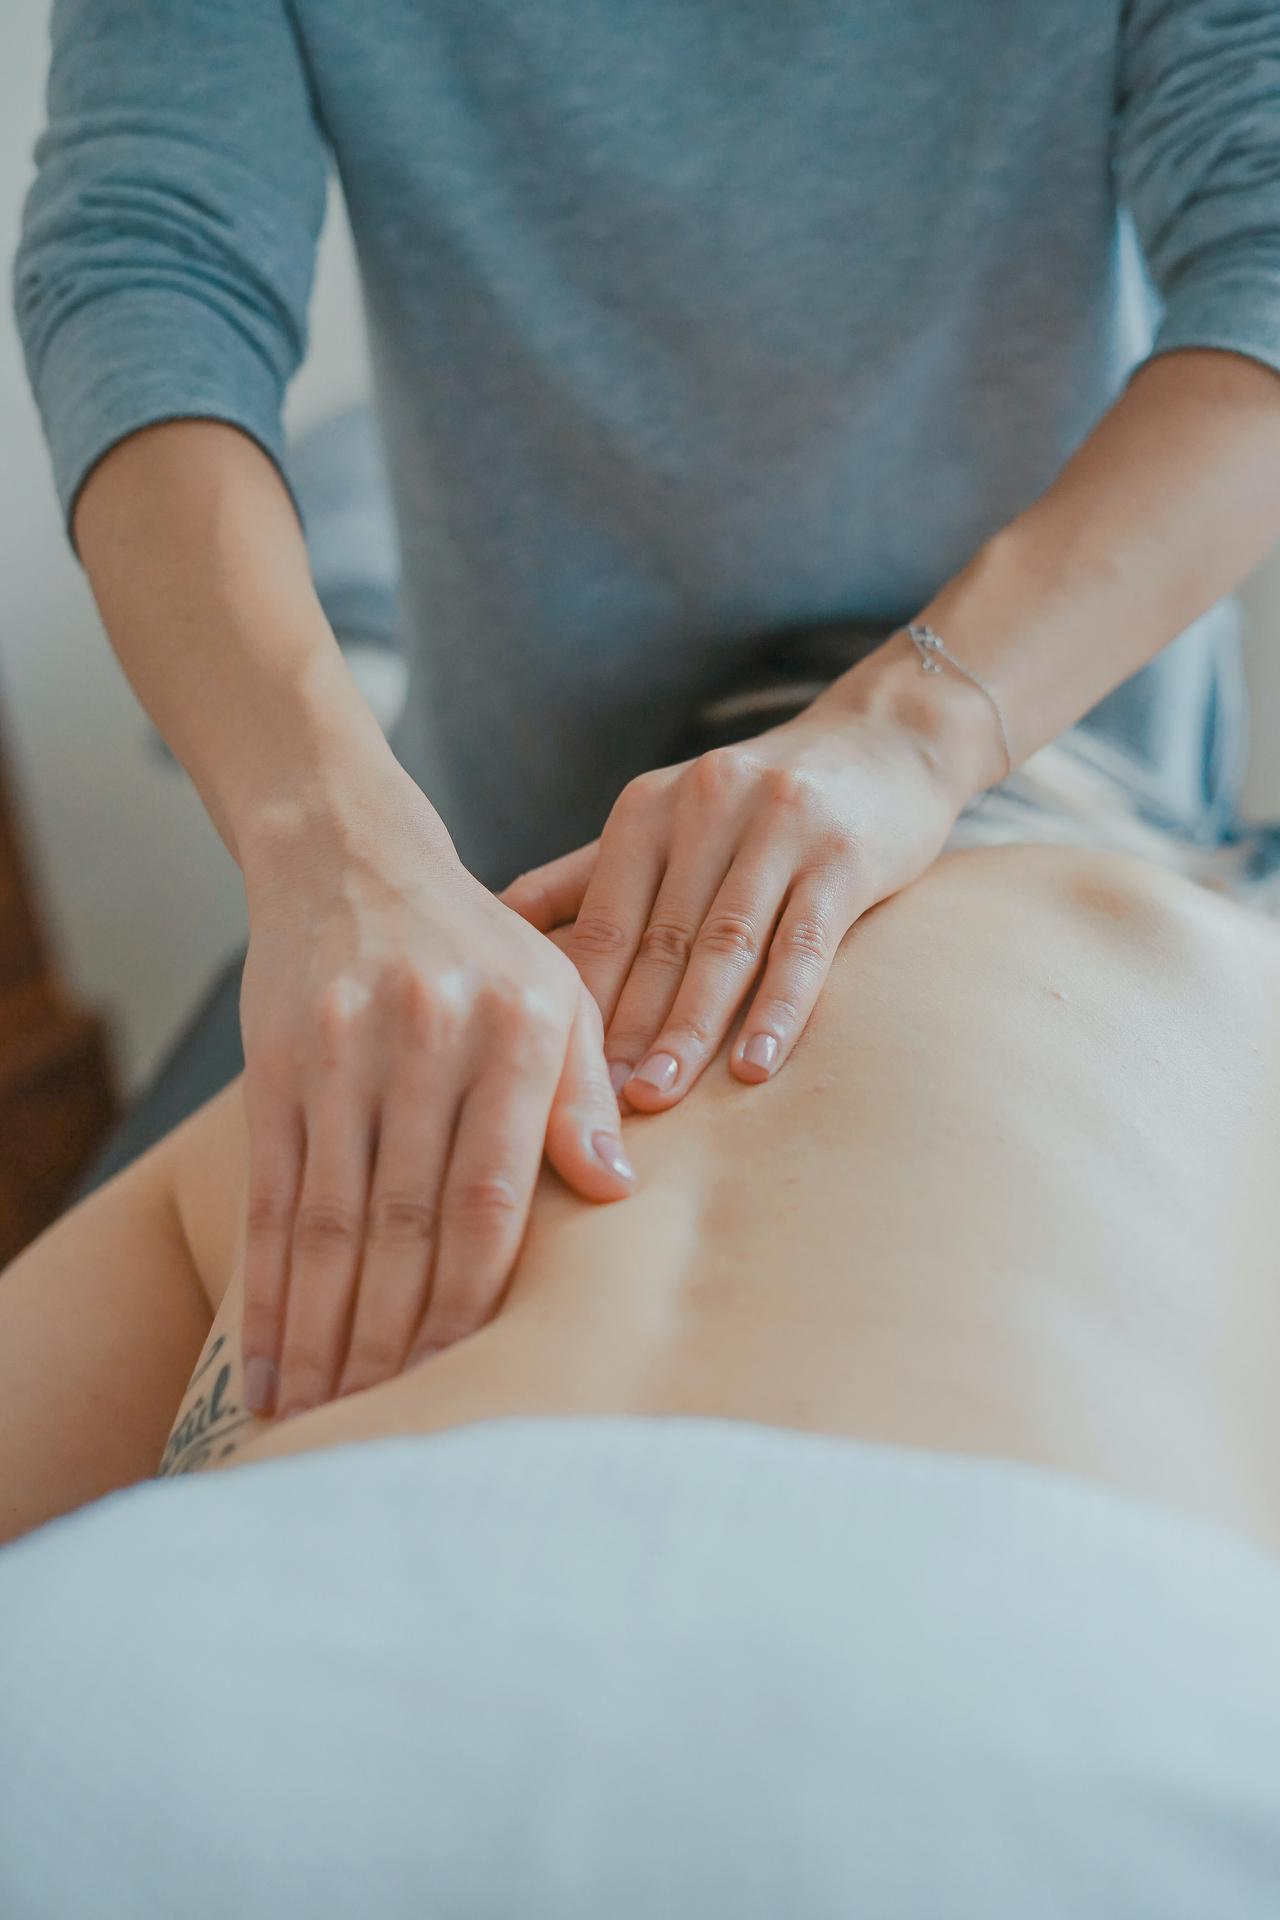 Body sculpting massage in Maryland.